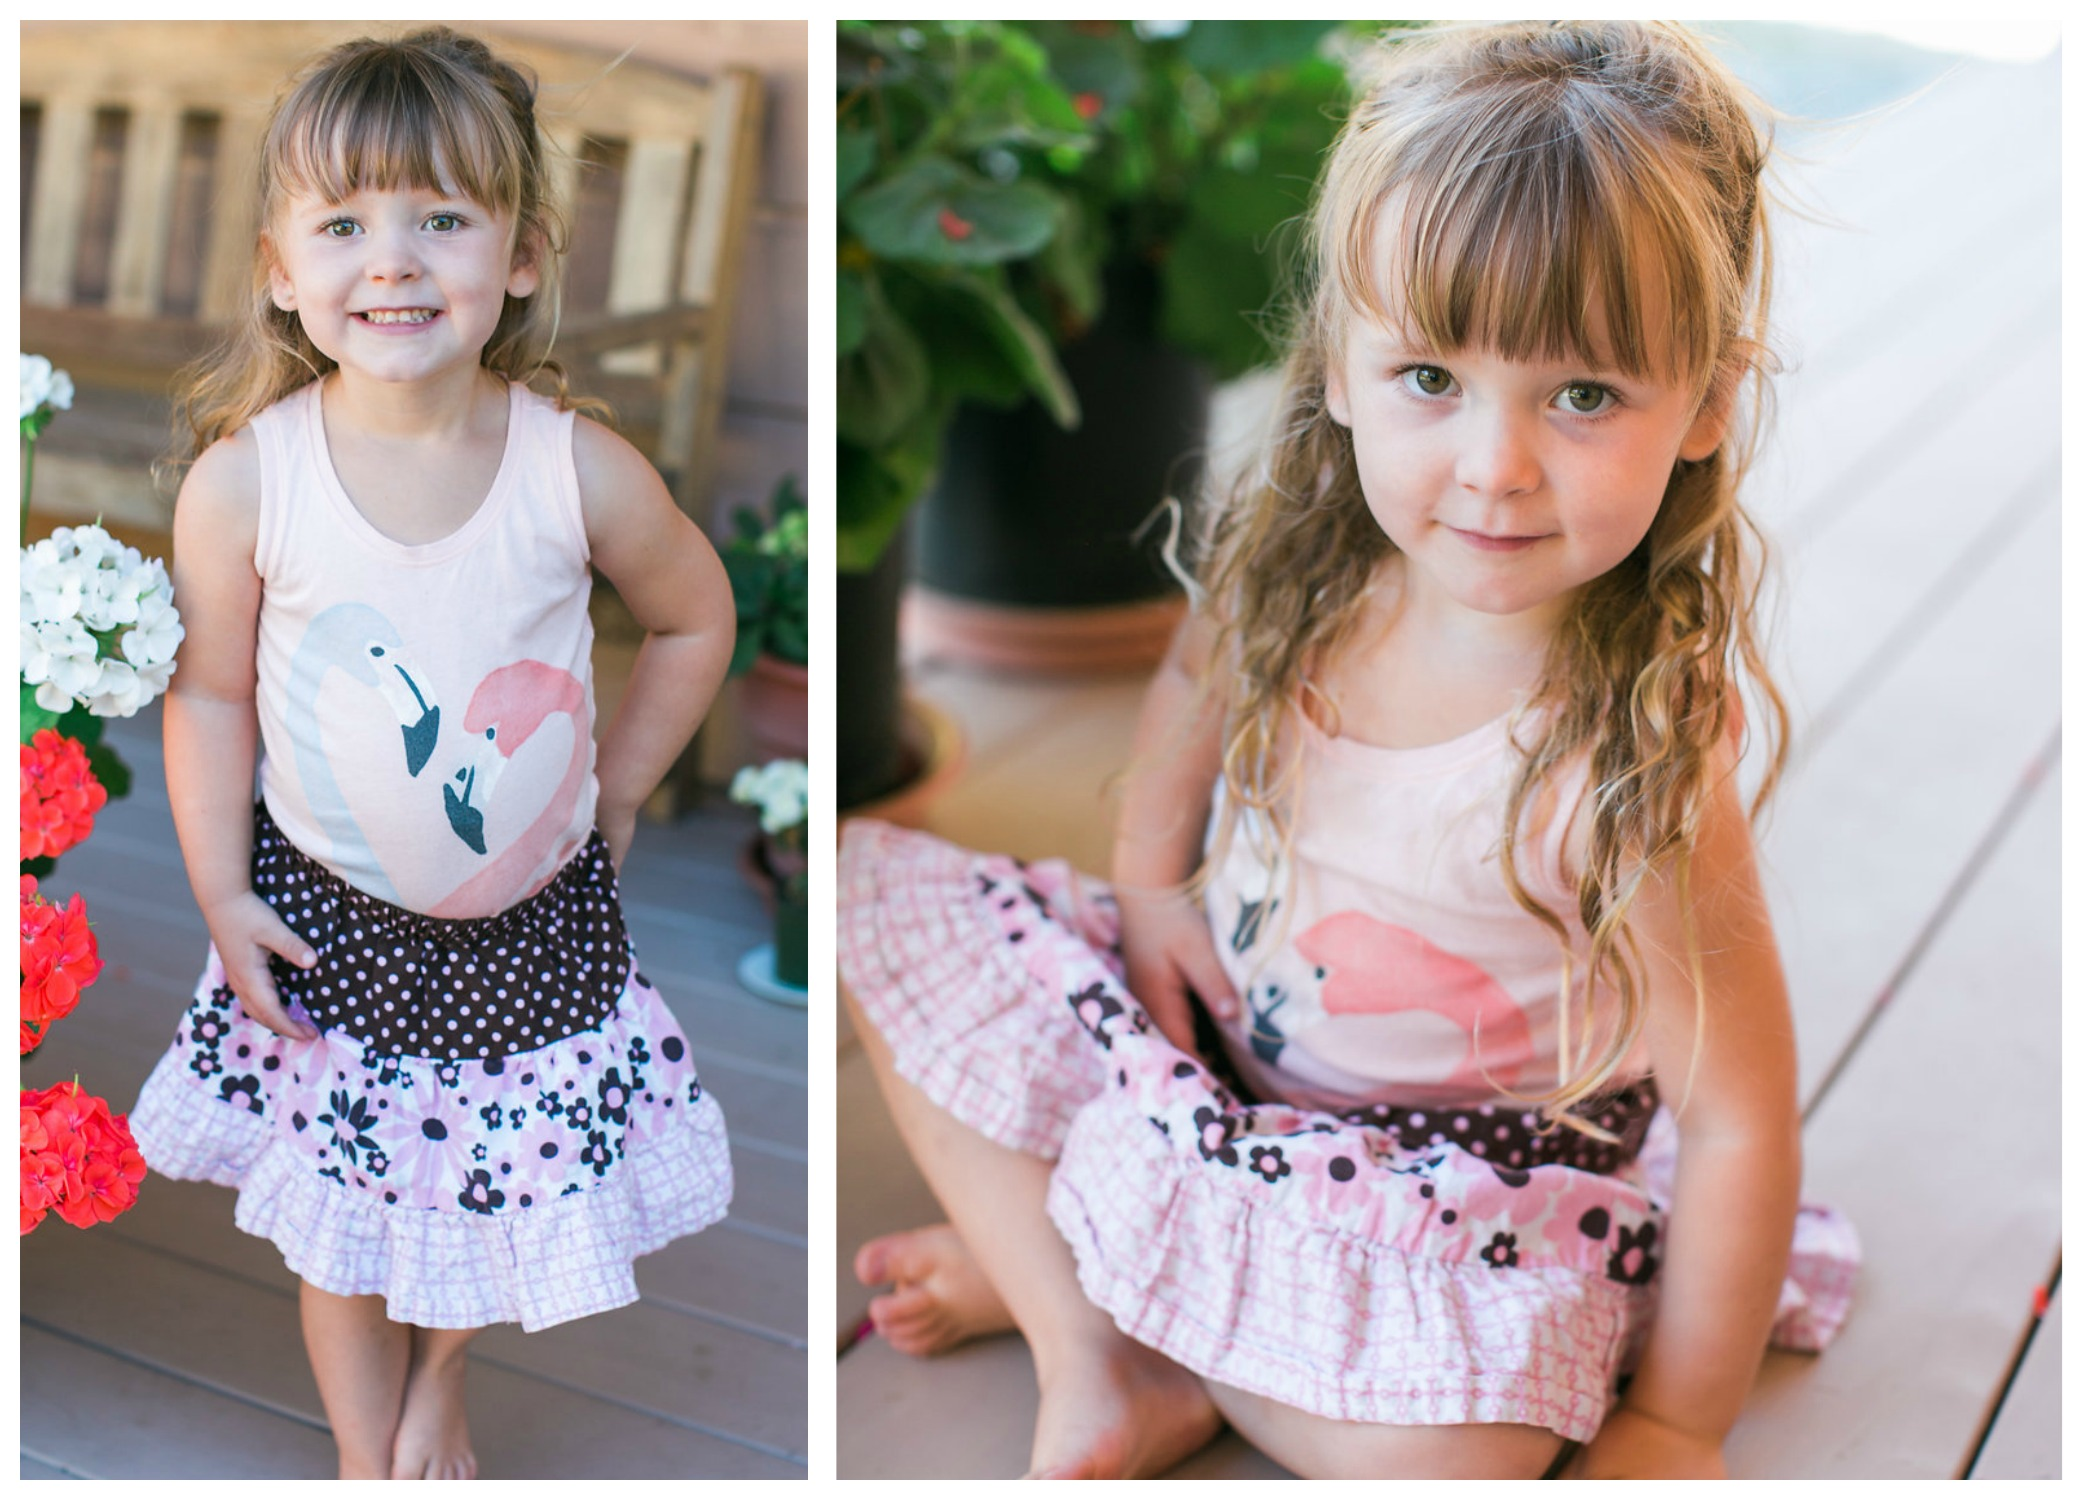 sewing-making-memories-with-kids-these-are-your-days-skirts-eternal-reflections-photography-pink